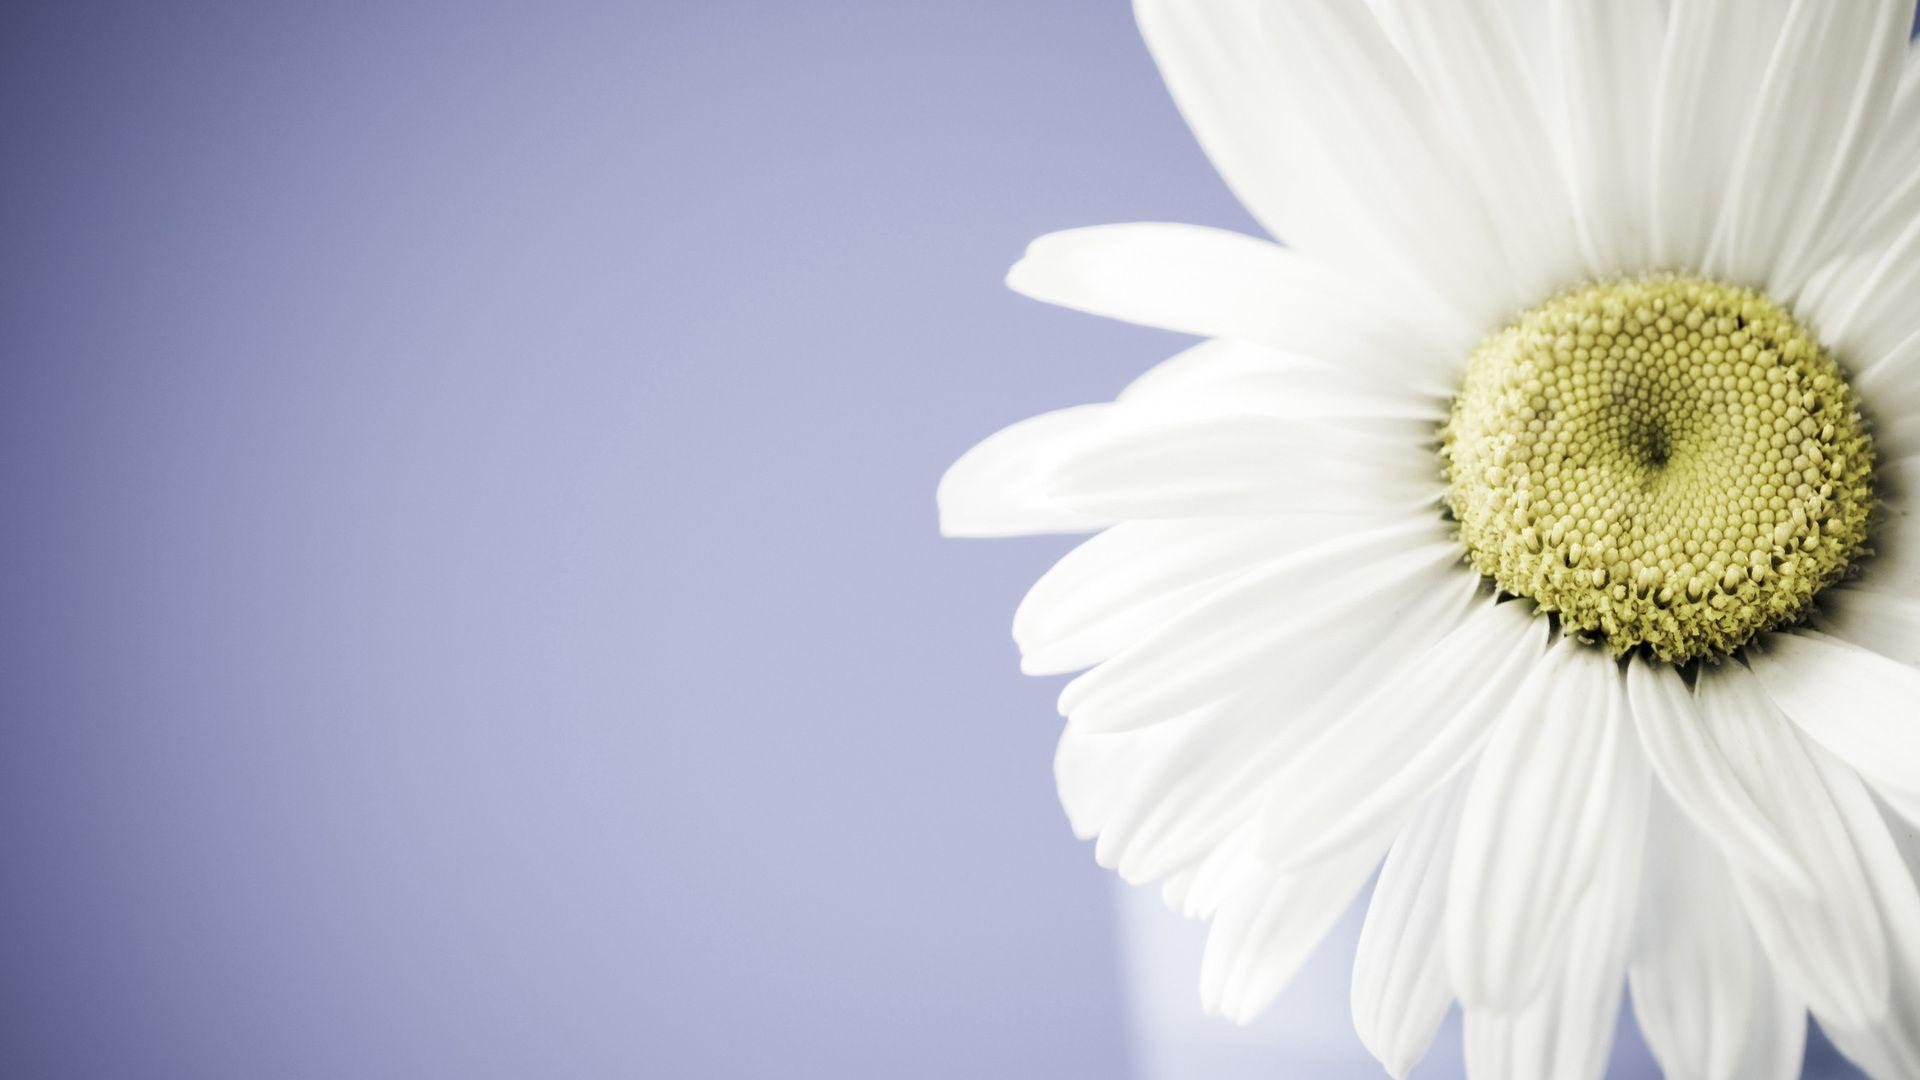 Fantastic Daisy Wallpapers 45884 1920x1080 px ~ HDWallSource